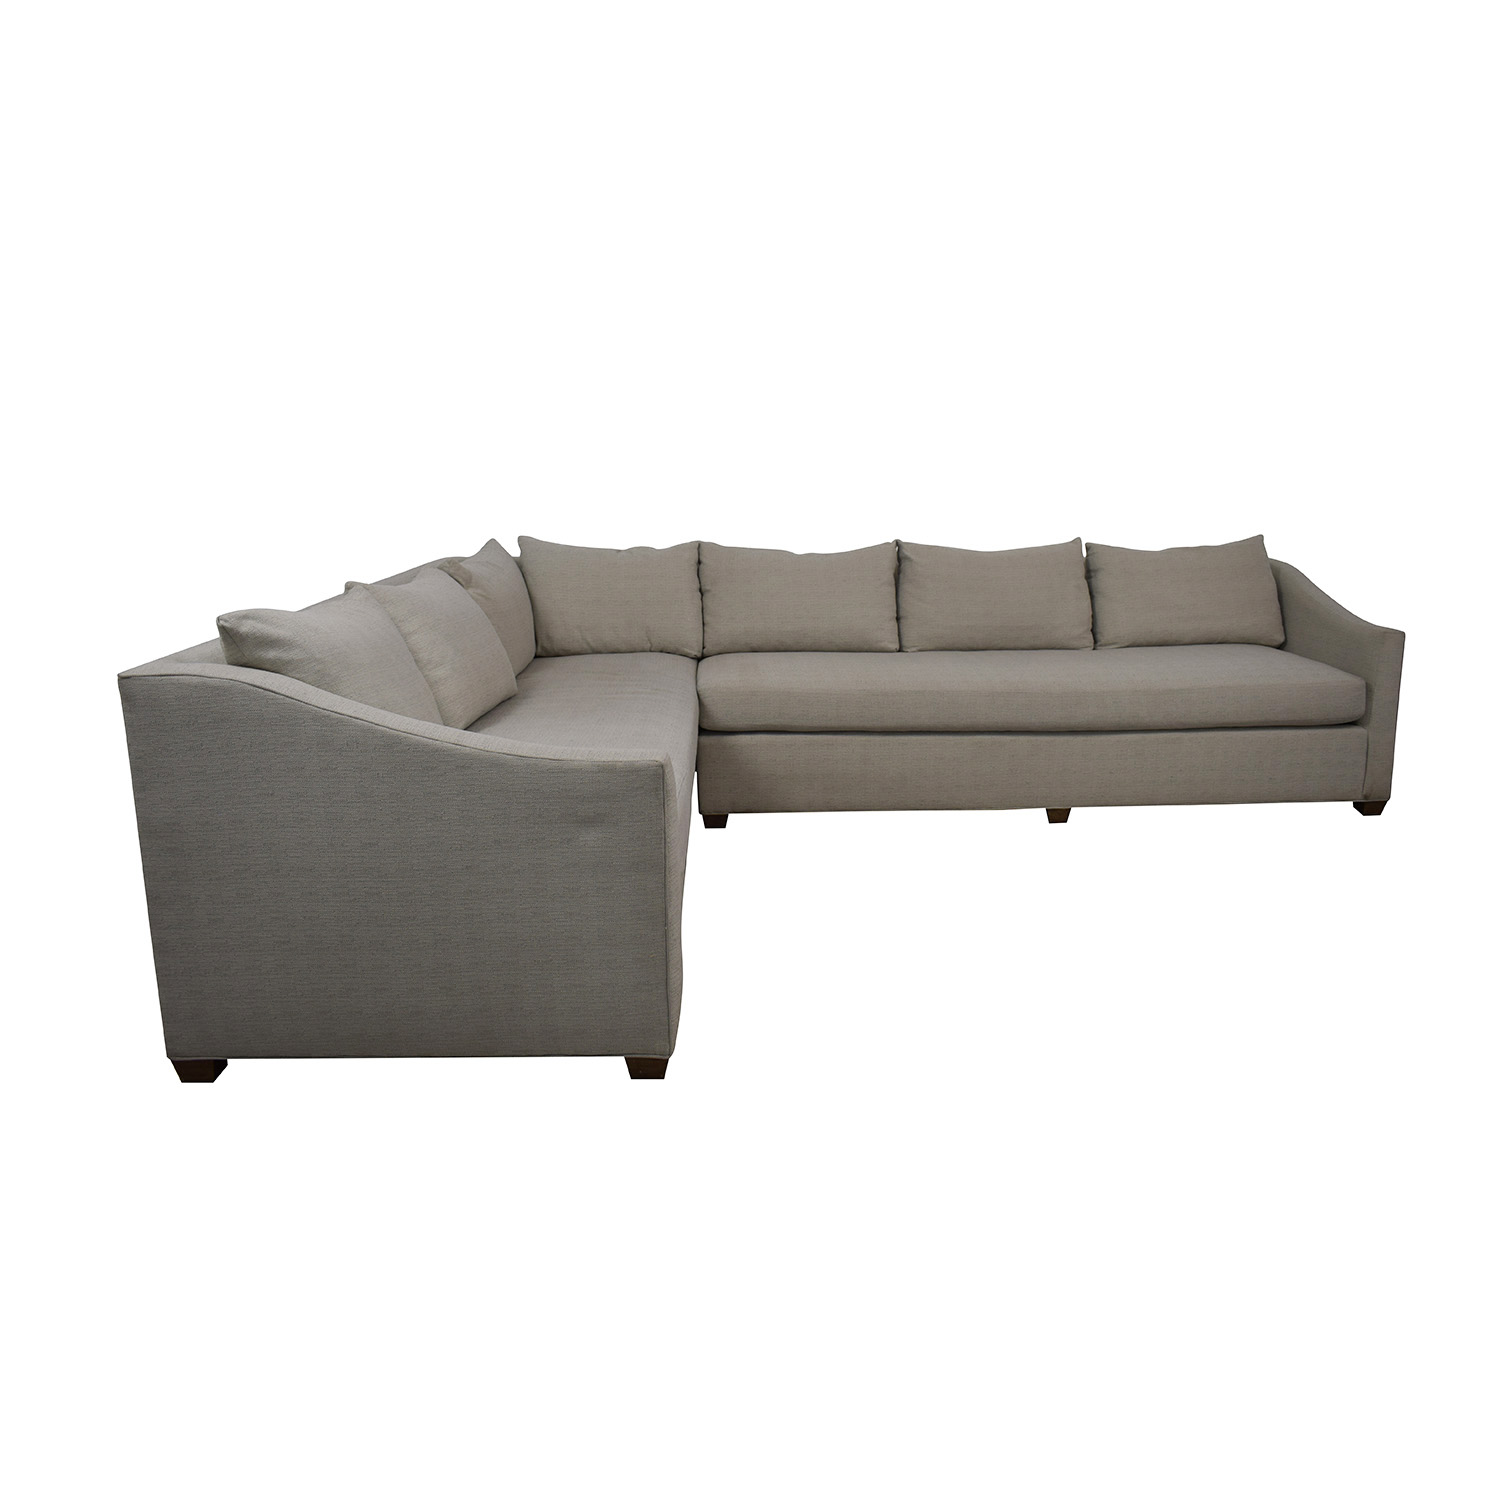 Maiden Home Maiden Home Sullivan Grey L-Shaped Sectional Sofas